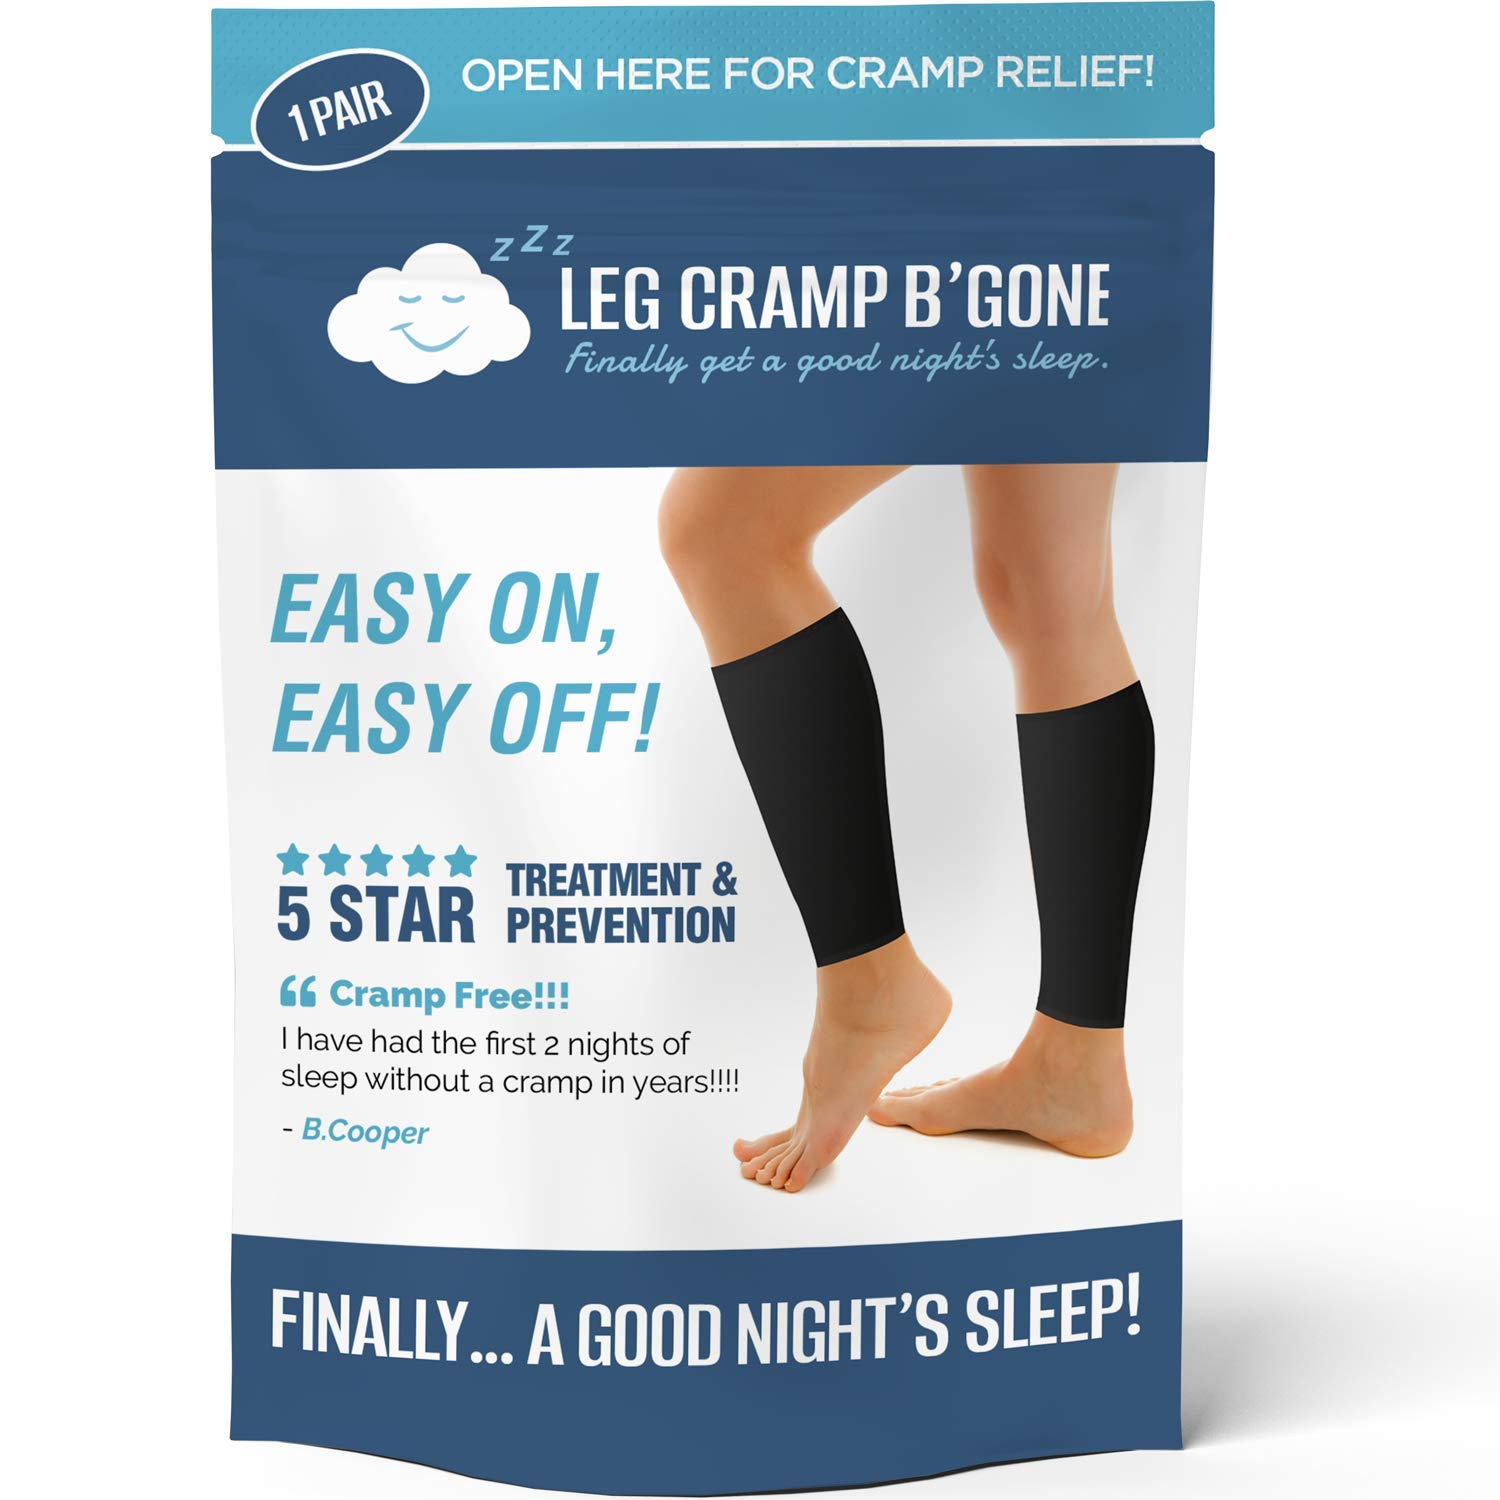 Sleeper Sleeves Can Stop and Prevent Night Leg and Foot Cramps - The Original Easy On, Easy Off - Made in USA - Maximum Calf Size - 14 1/2 INCH Circumference - DO NOT Exceed, Pain Will Increase